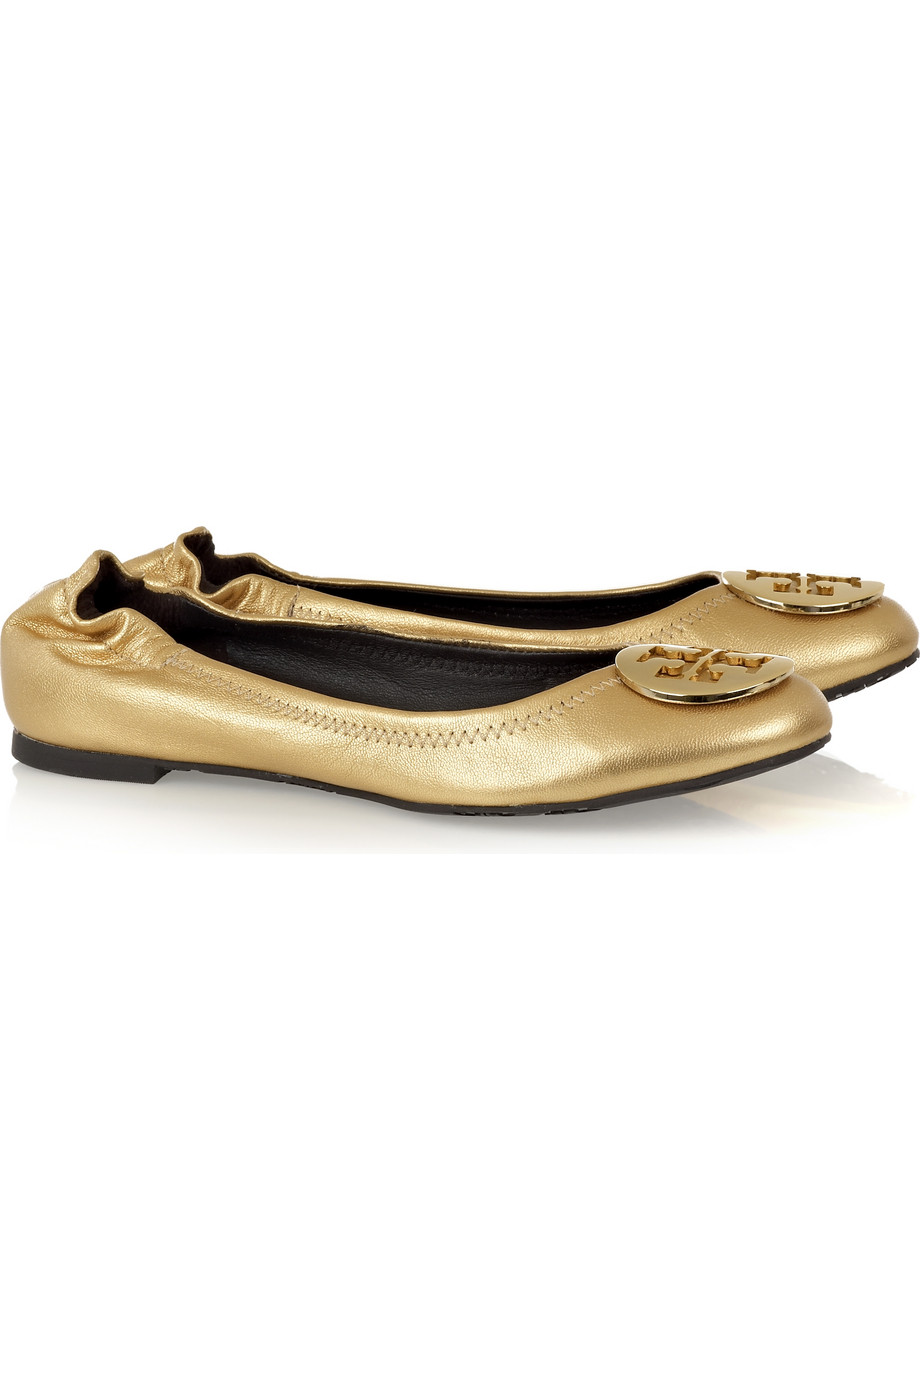 tory burch reva leather ballerina flats in gold lyst. Black Bedroom Furniture Sets. Home Design Ideas